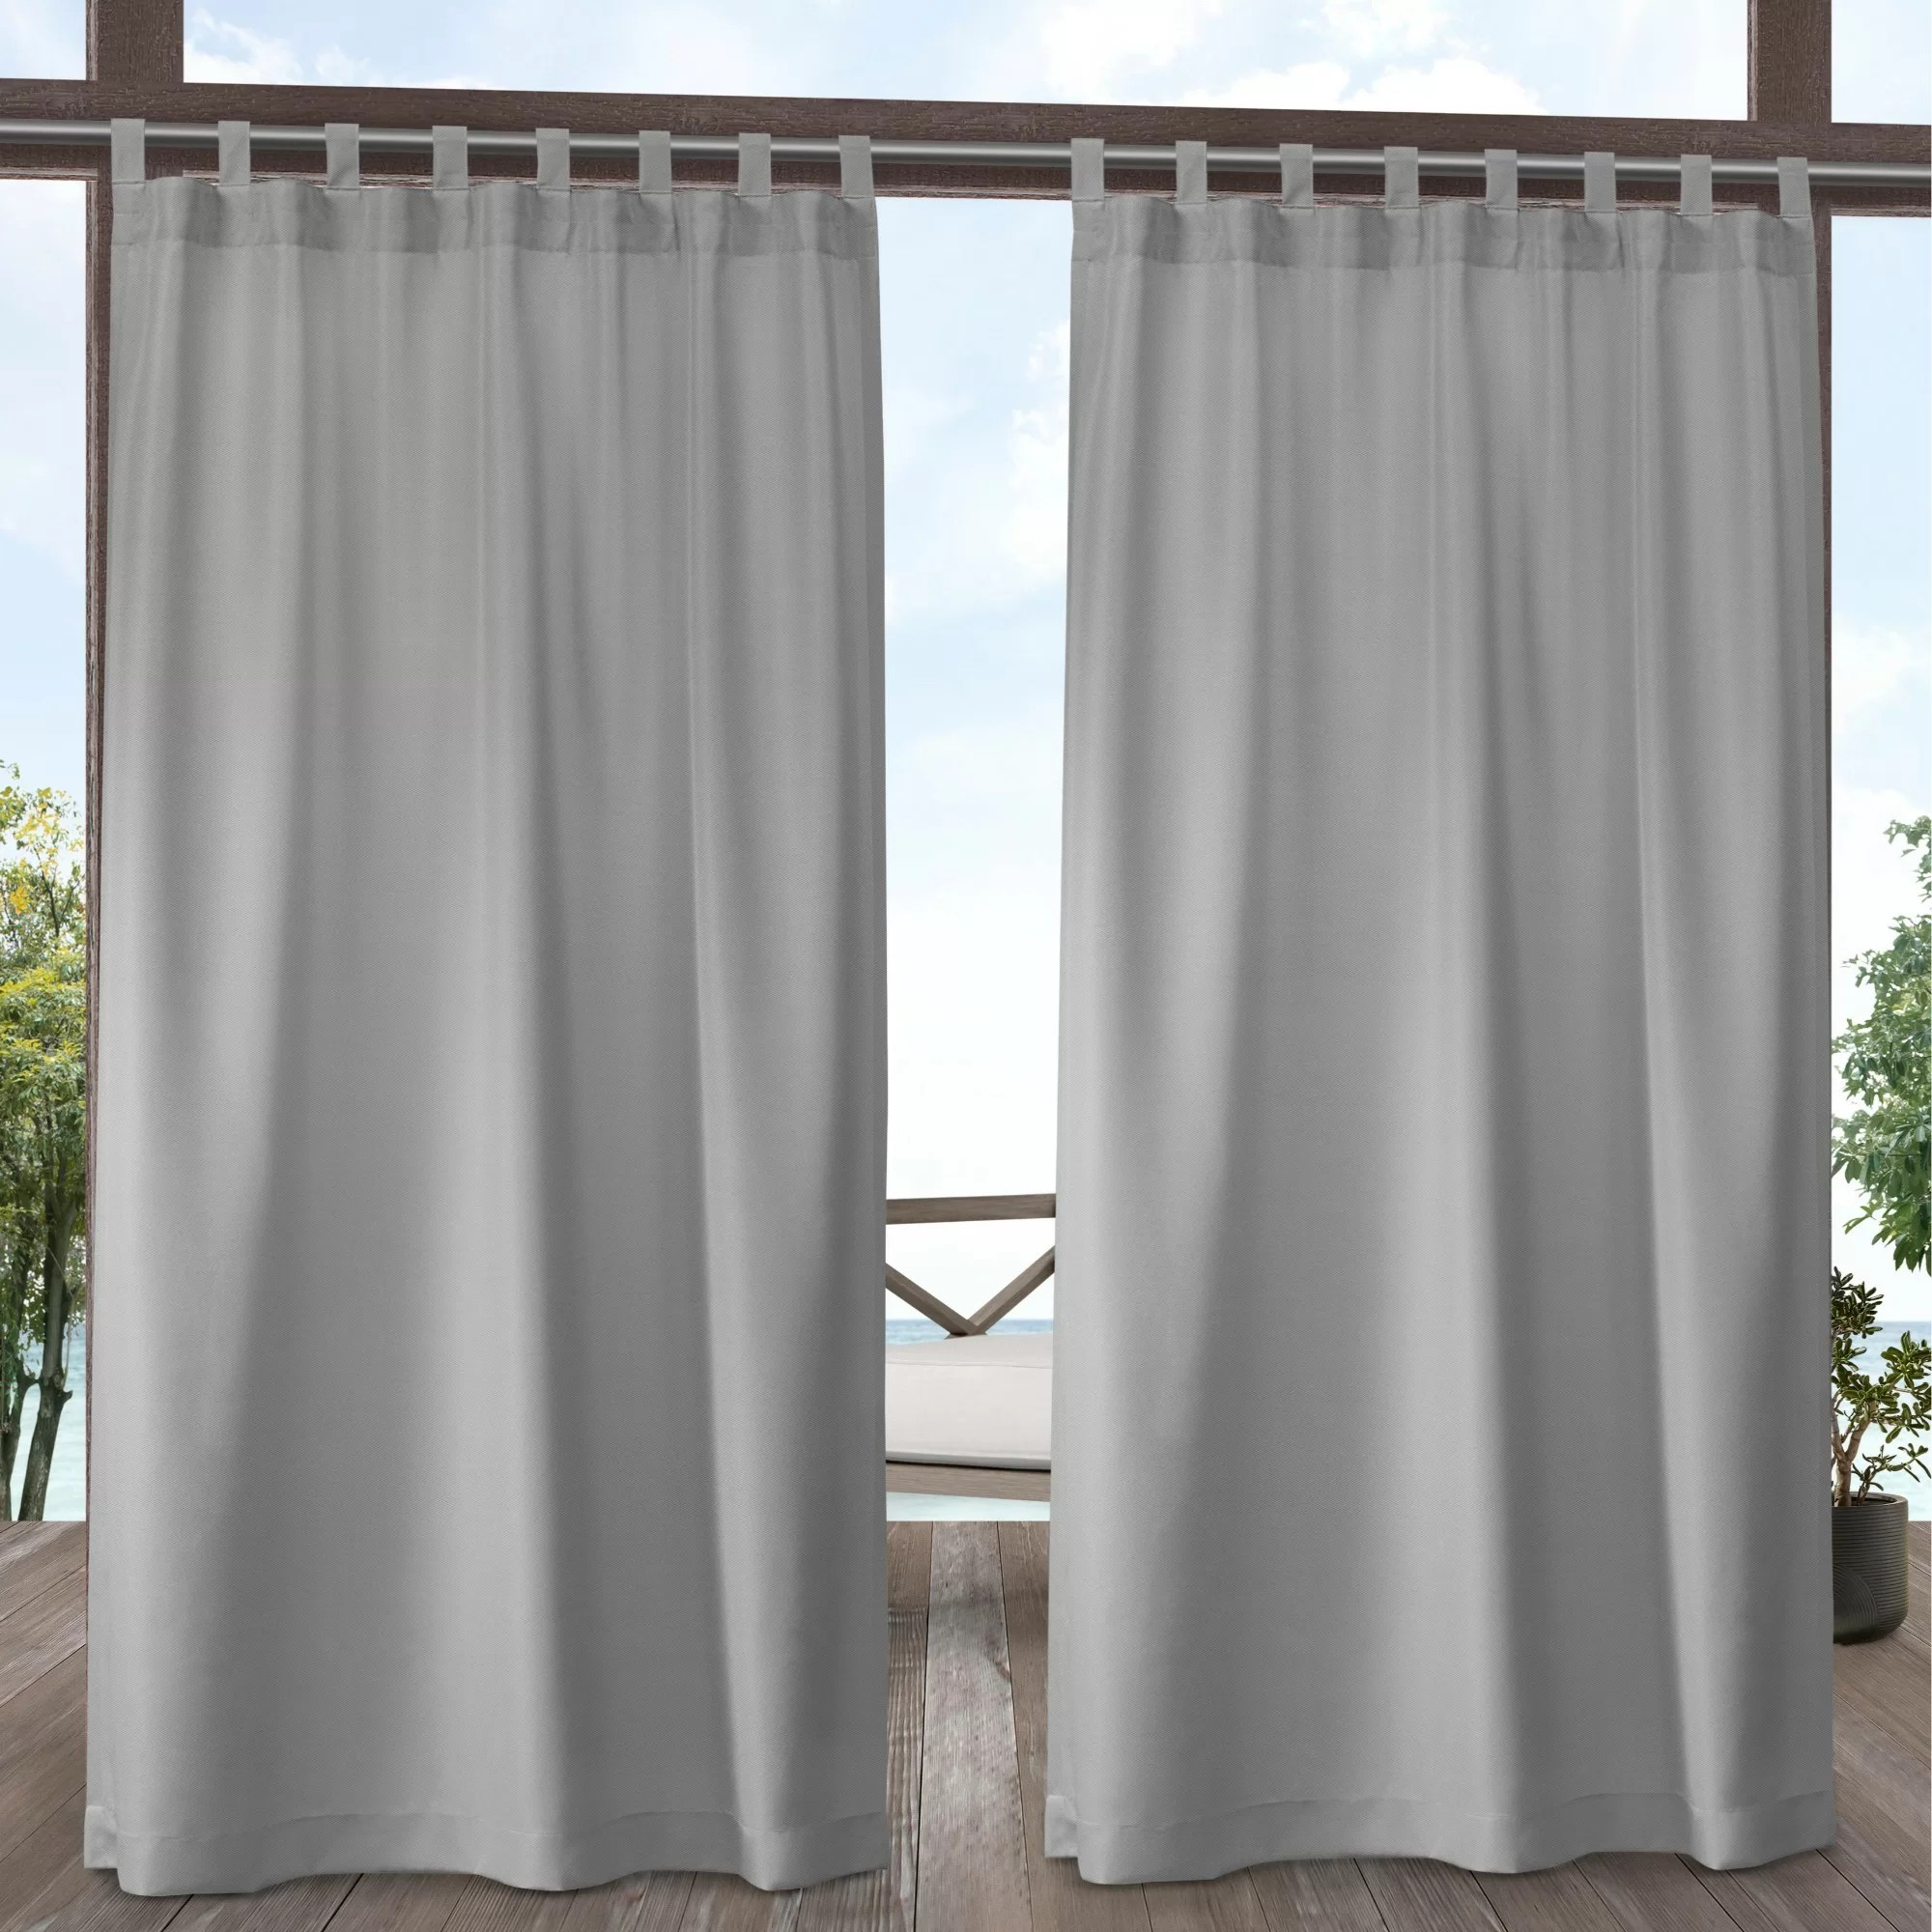 Tab Top Curtain Longview Window Solid Color Room Darkening Outdoor Tab Top Curtain Panels